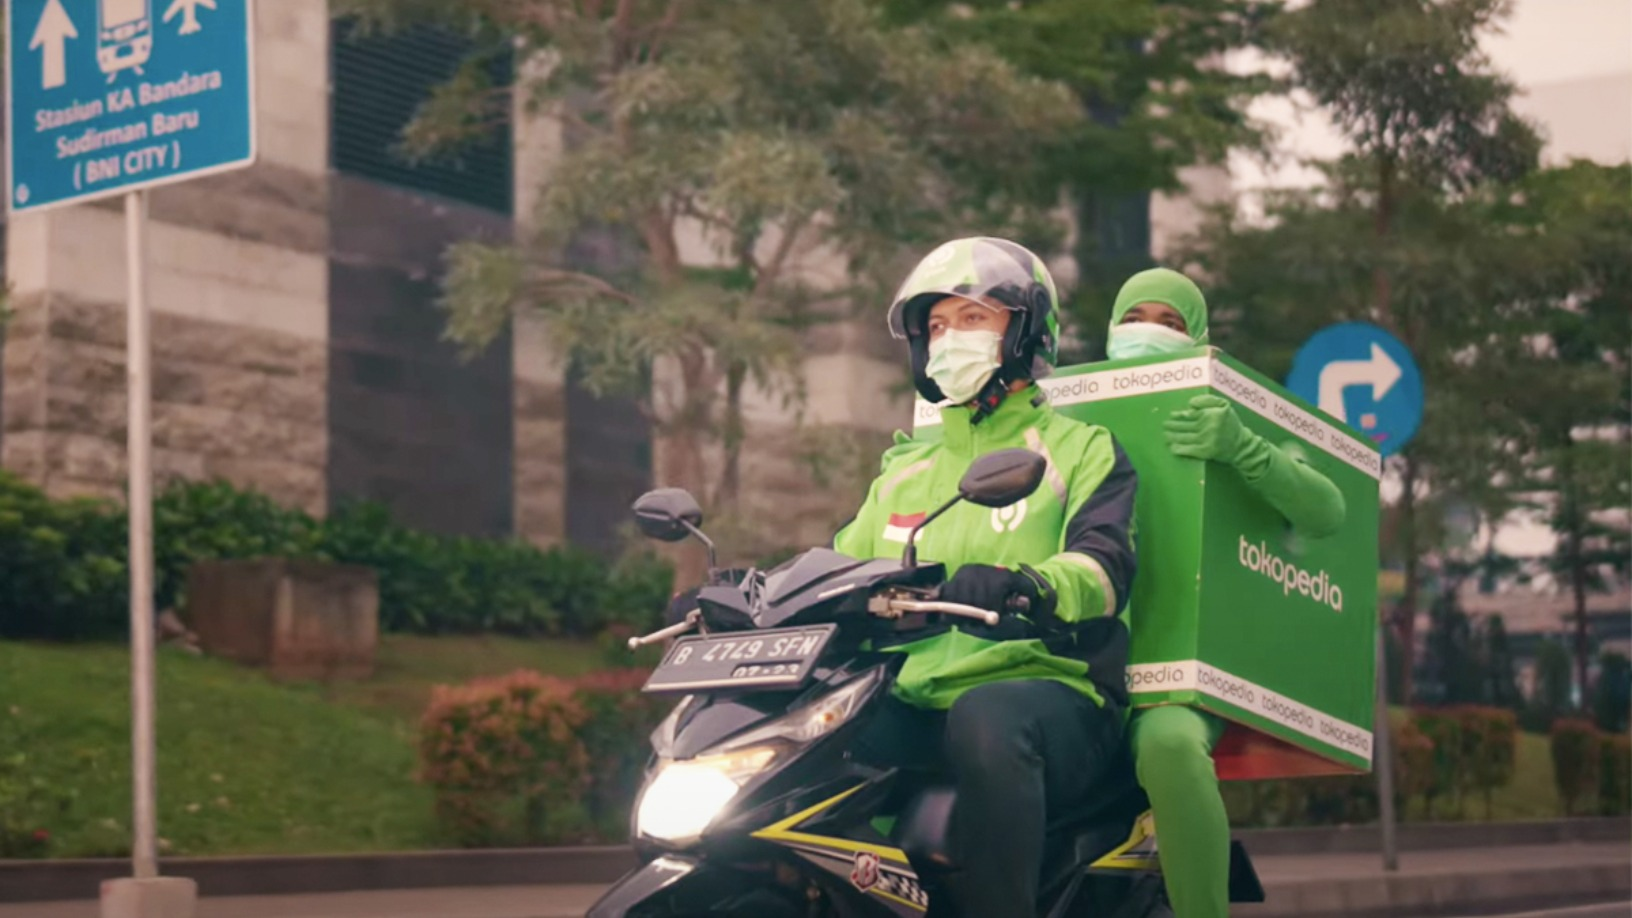 Gojek and Tokopedia merge to form GoTo